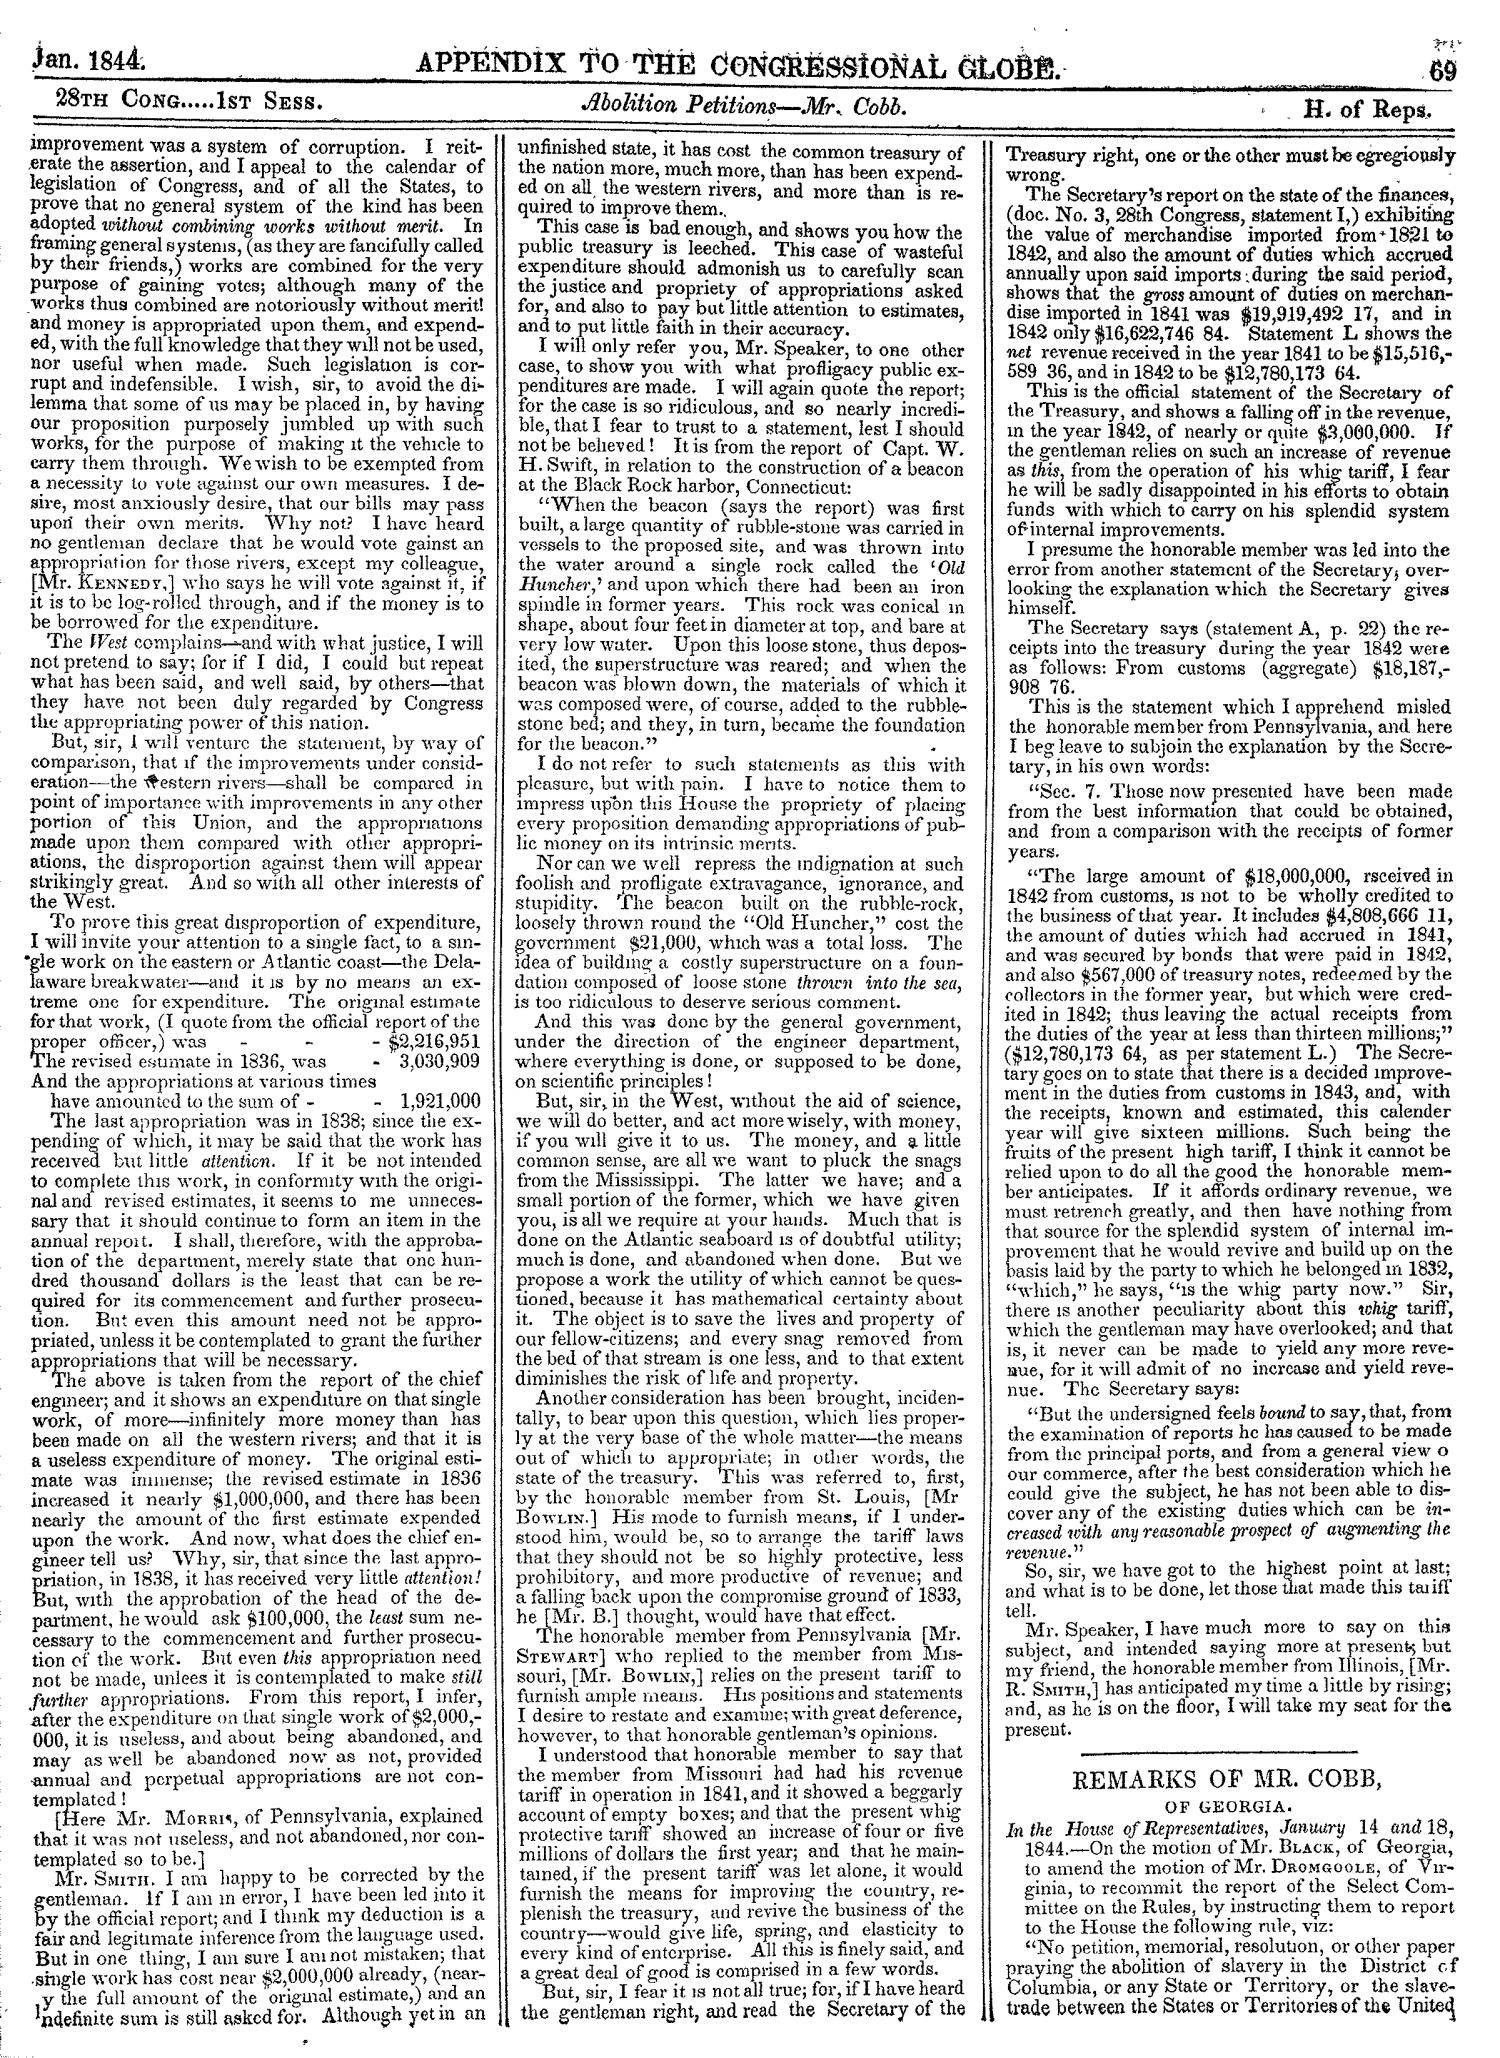 The Congressional Globe, Volume 13, Part 2: Twenty-Eighth Congress, First Session                                                                                                      69